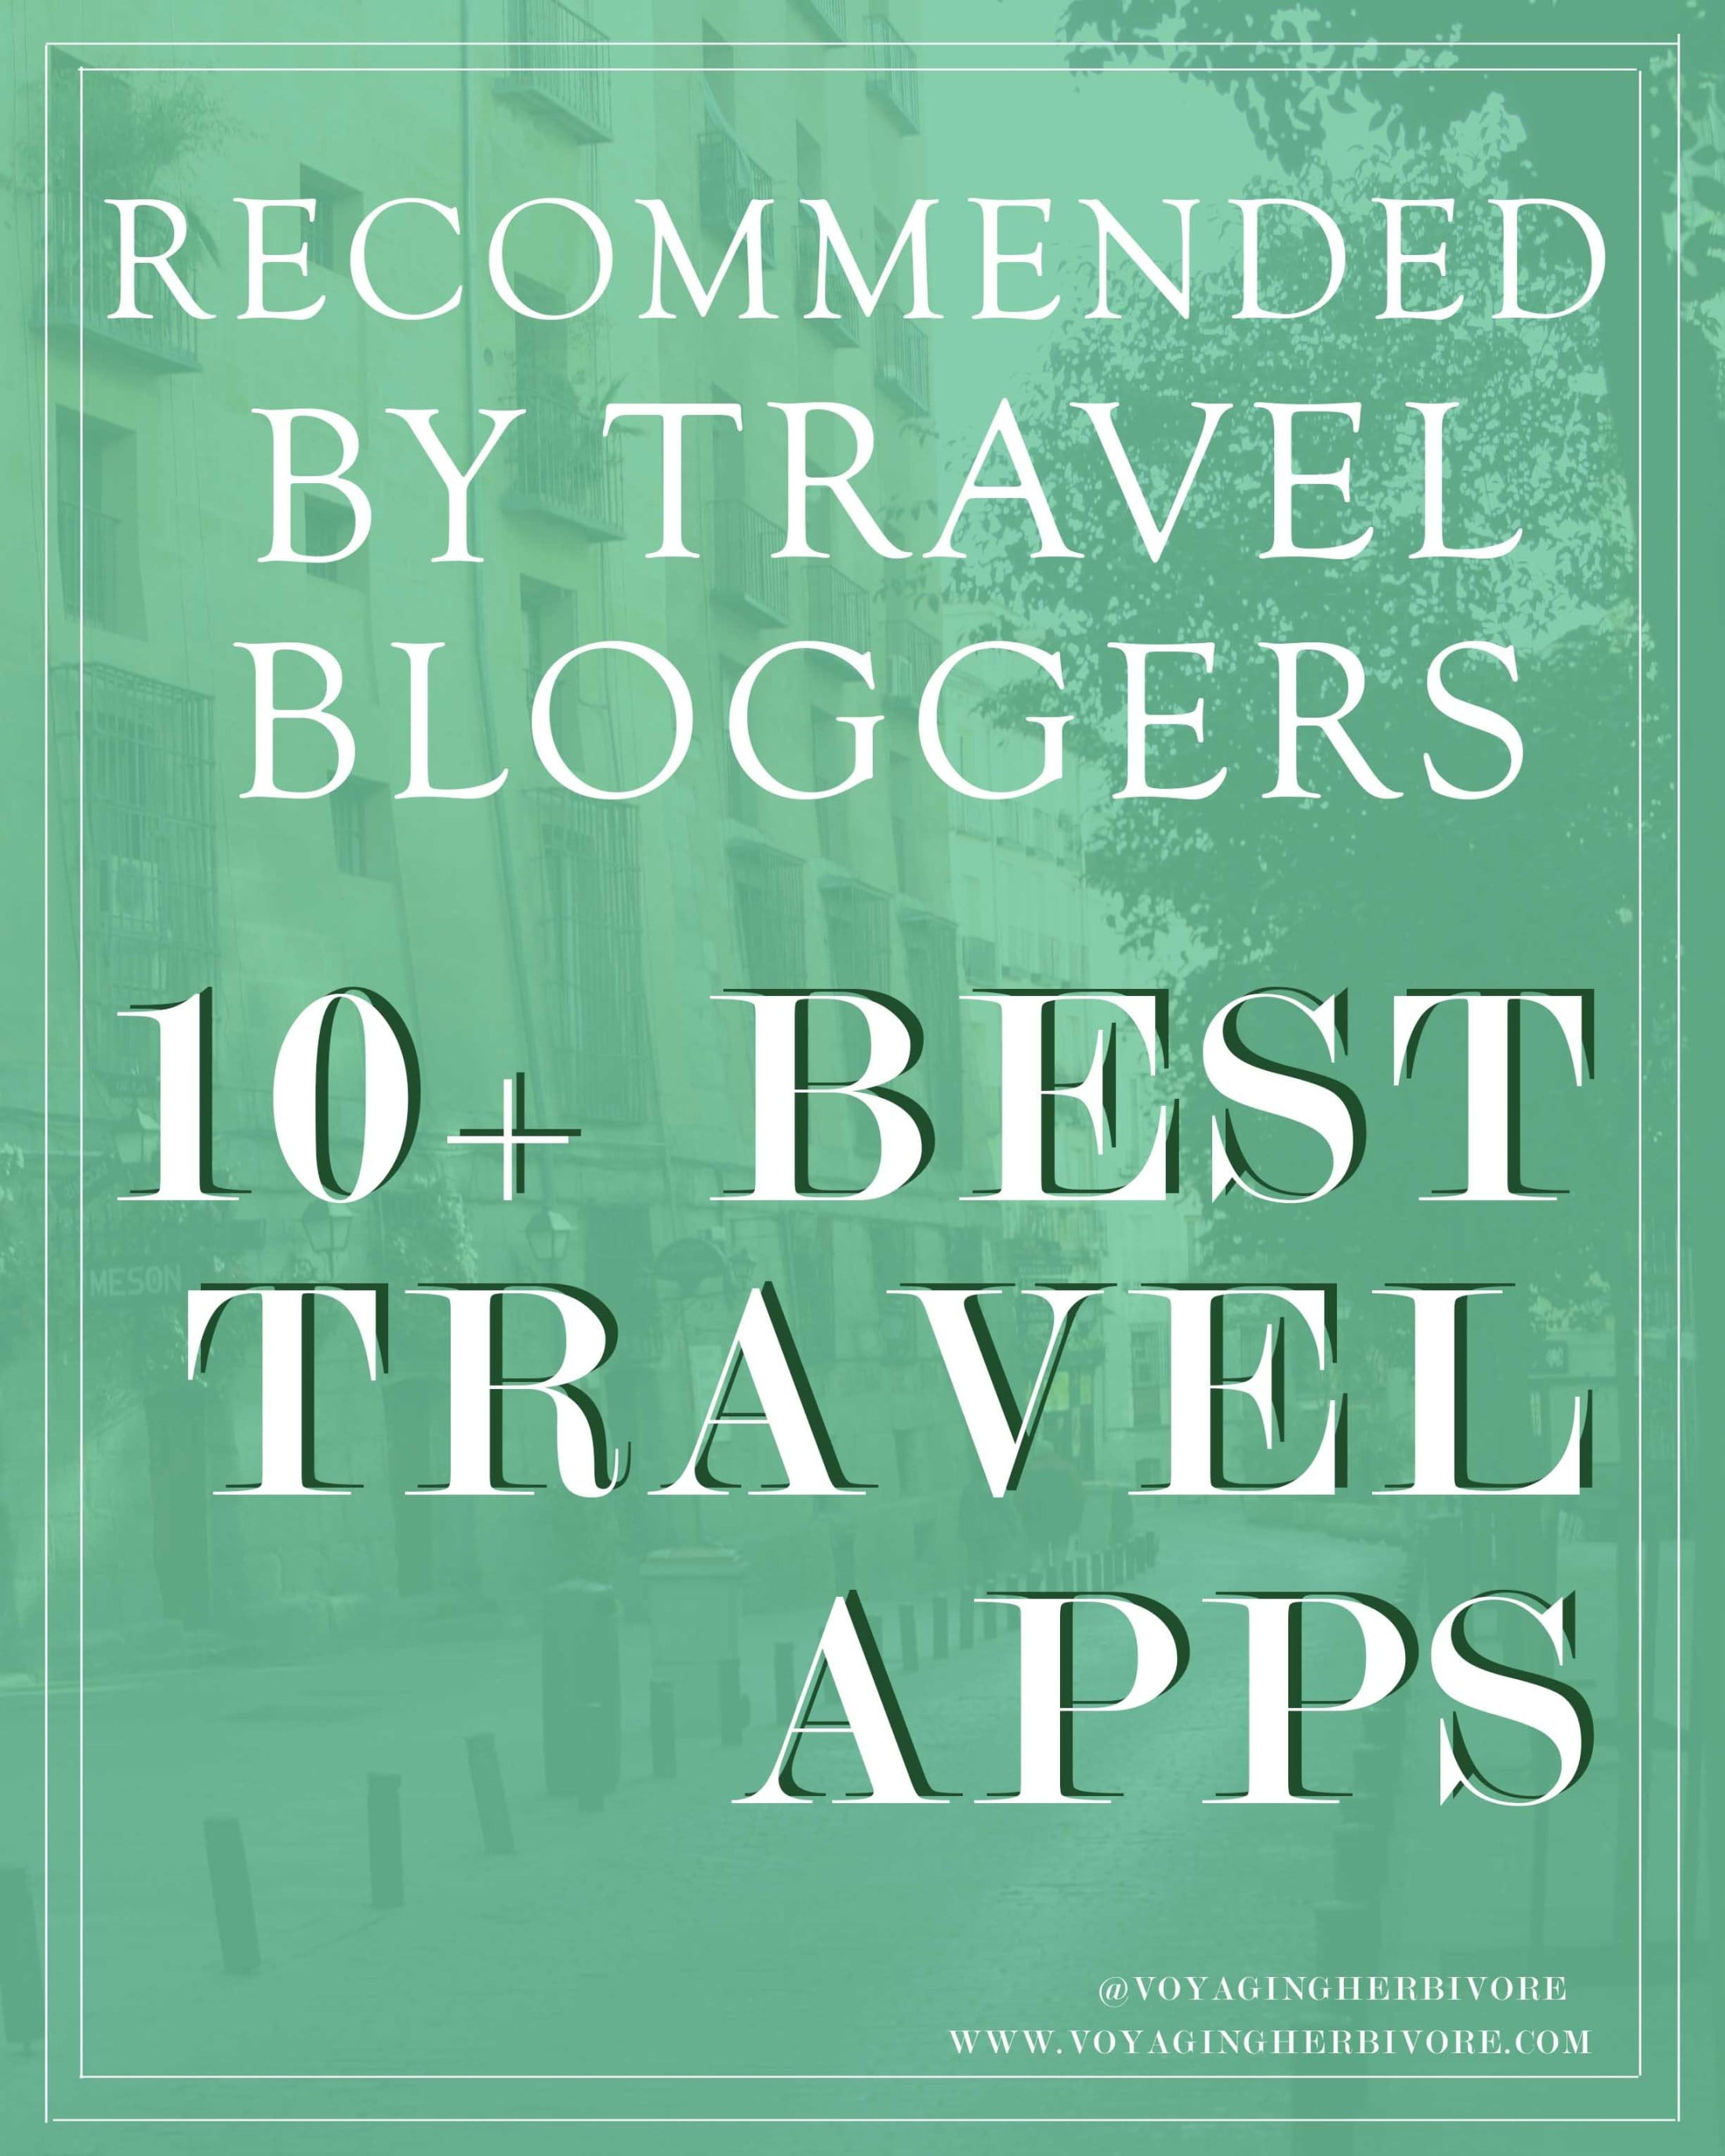 10 Best Travel Apps Recommended By Travel Bloggers – Collaborative Post for Voyaging Herbivore